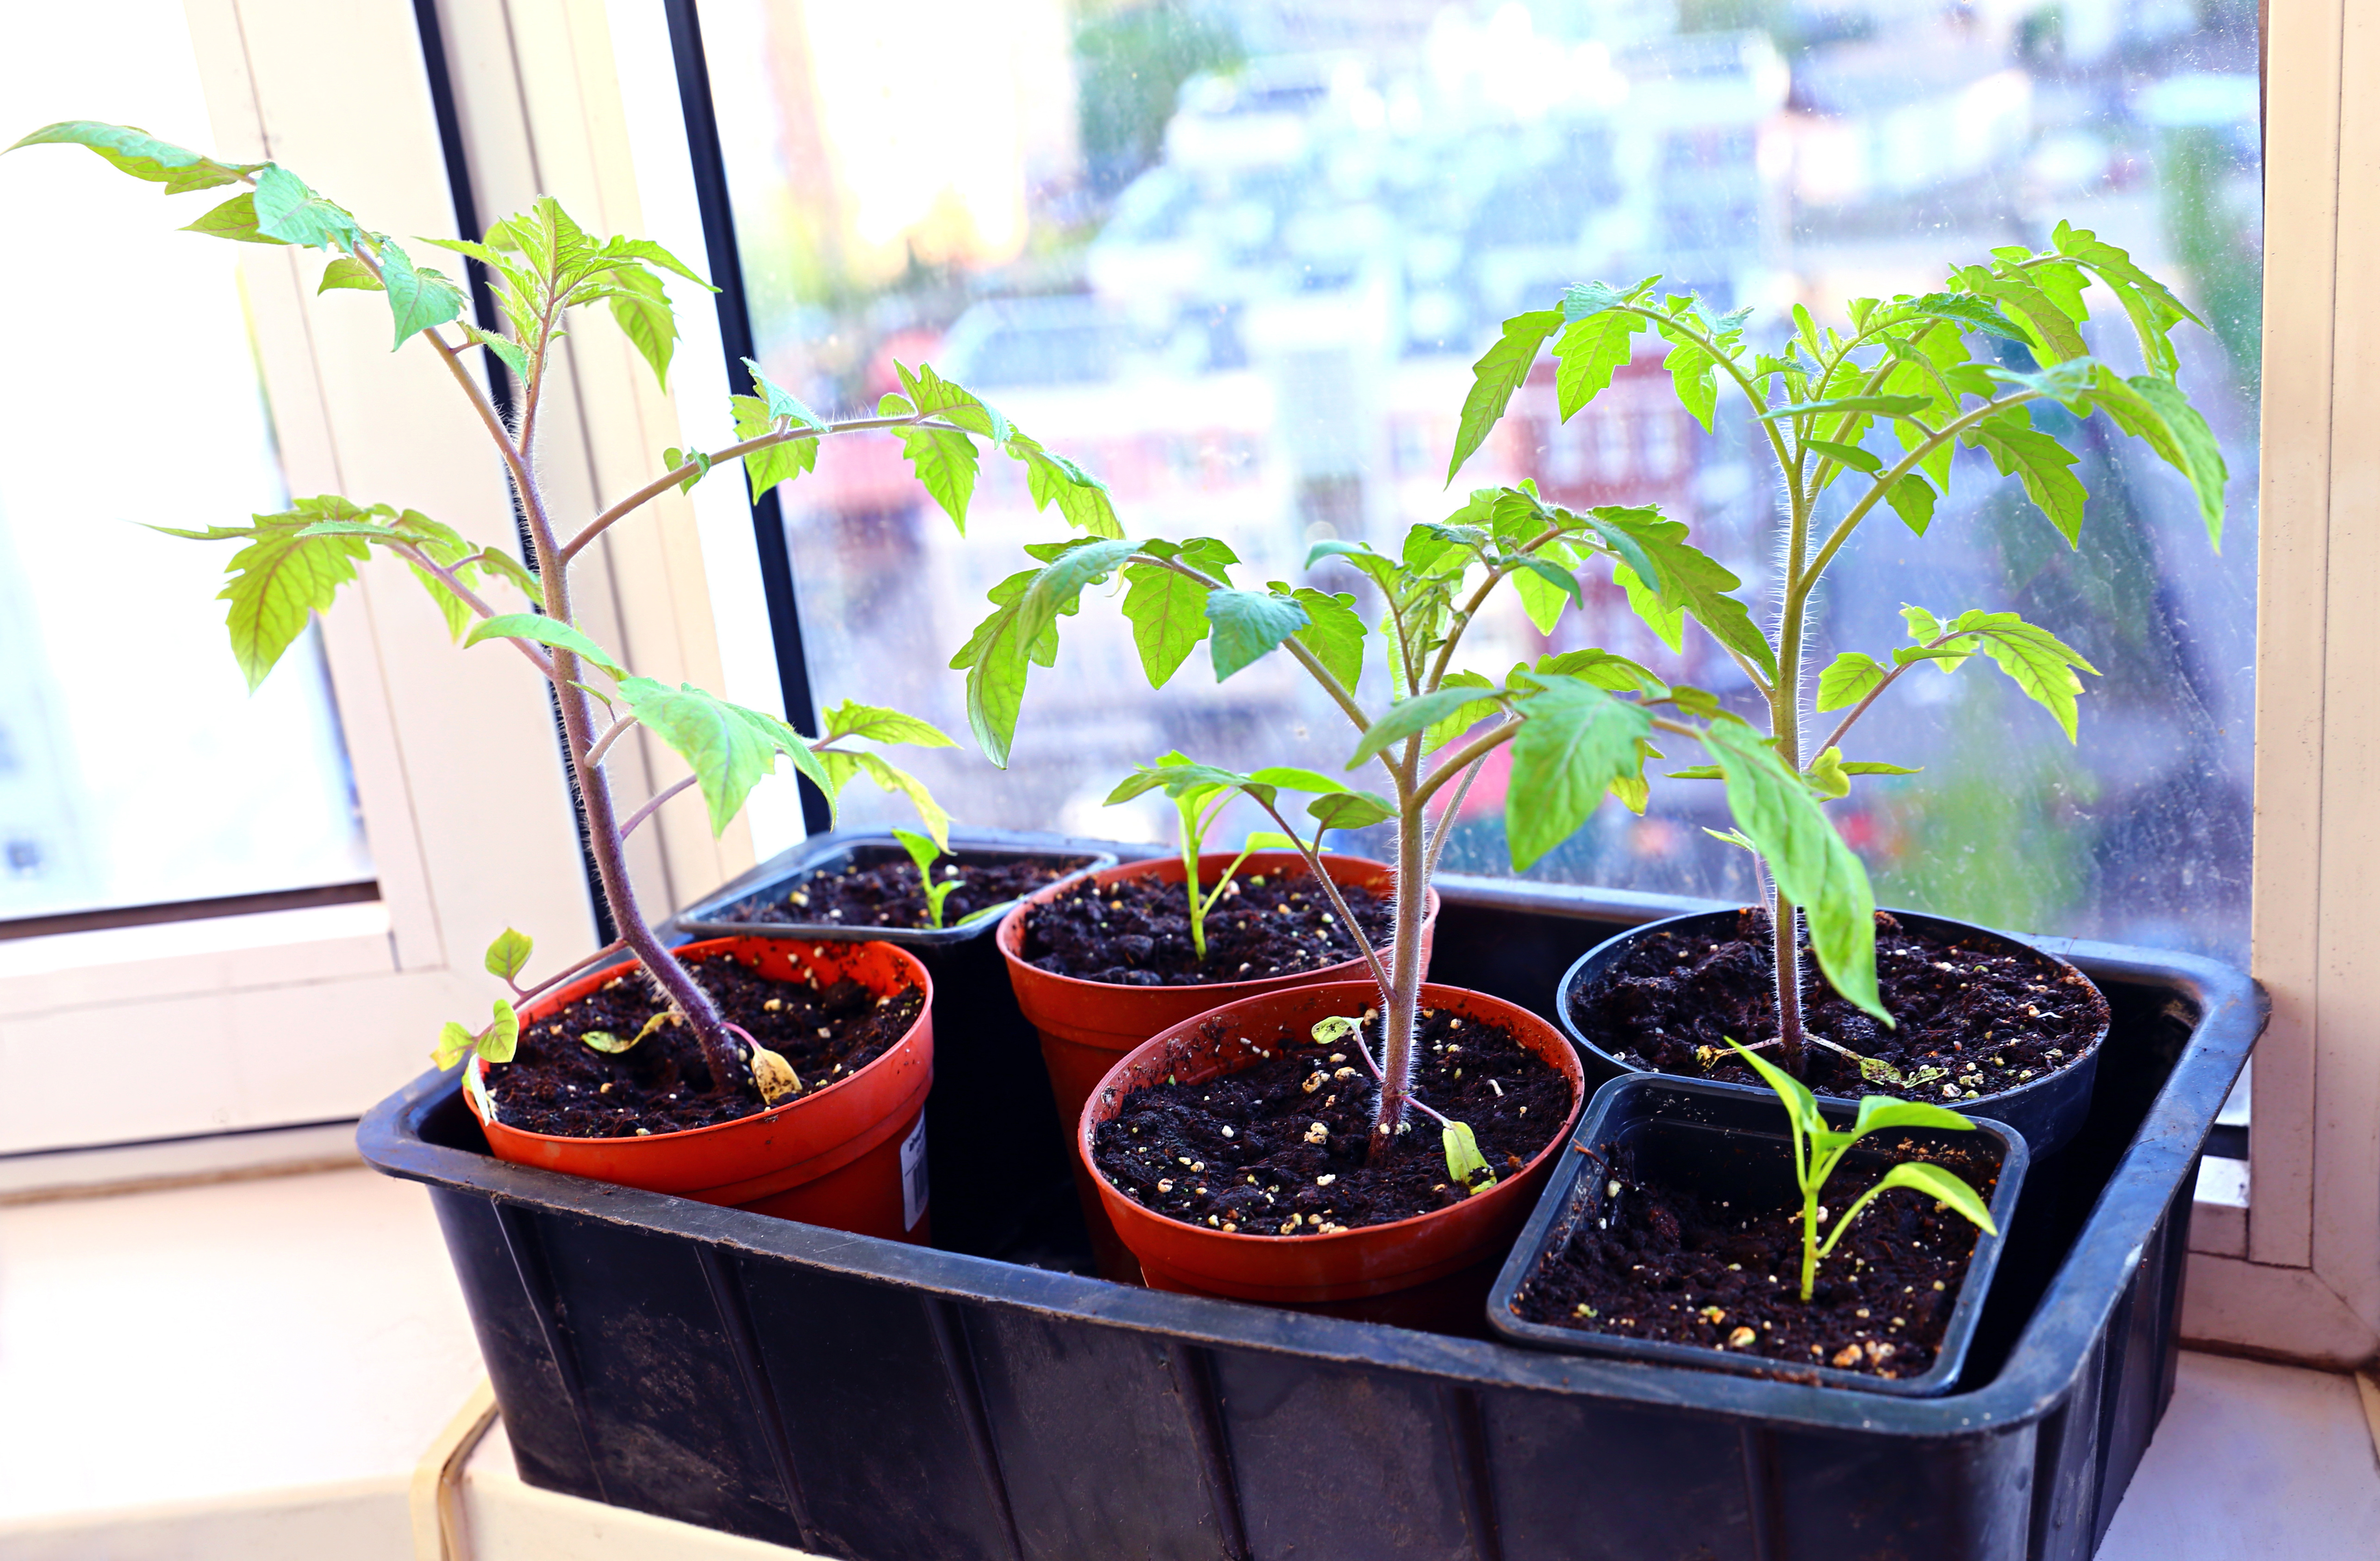 Tomato seedlings in pots on window | Stock image, St. George News